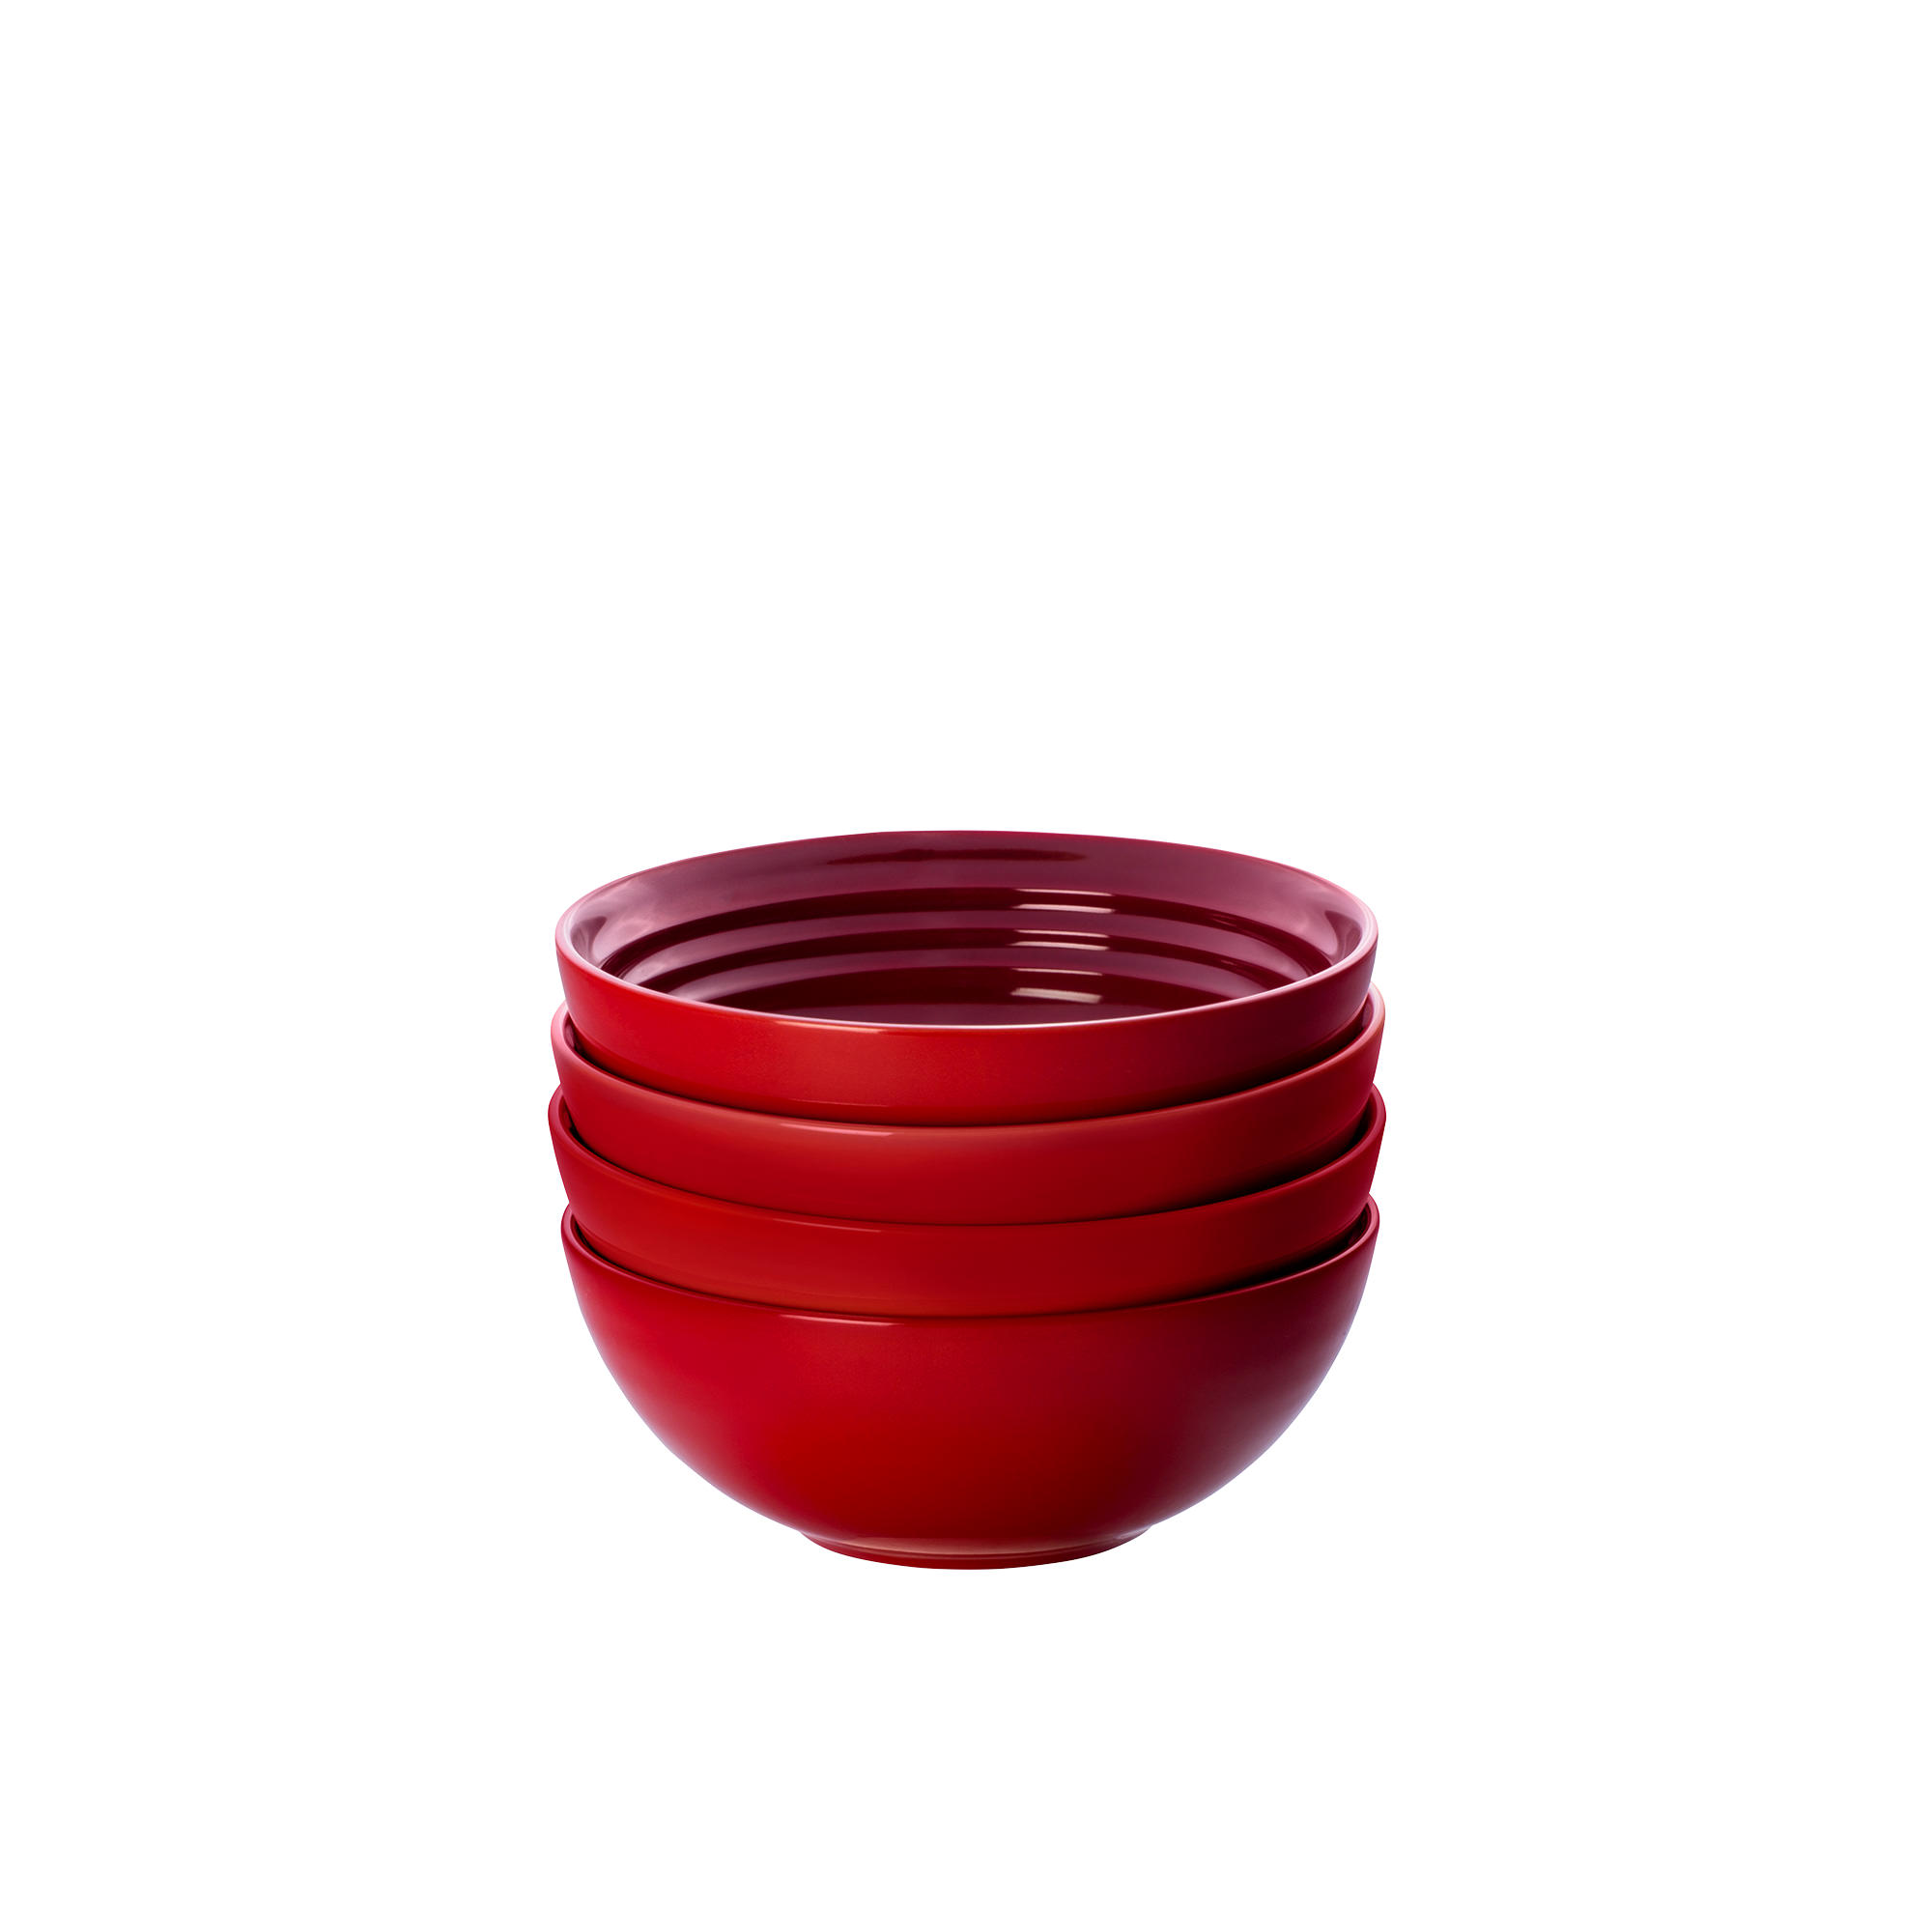 Le Creuset Stoneware Cereal Bowl 16cm Set of 4 Cerise